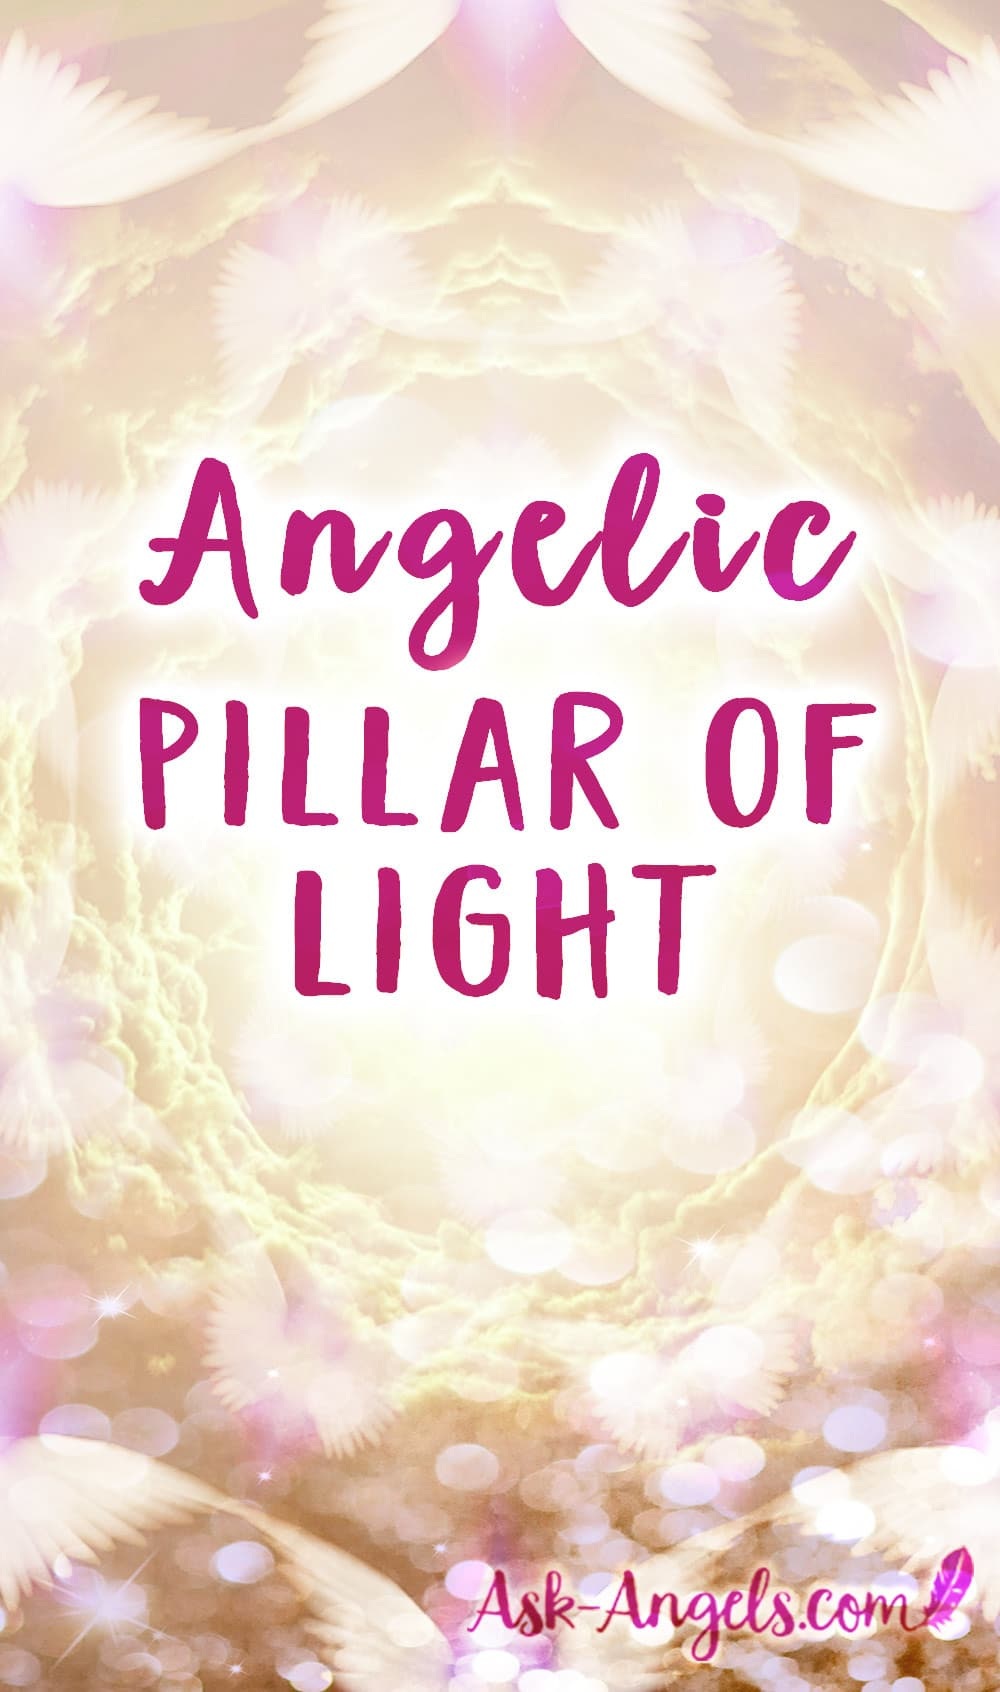 Angelic Pillar of Light